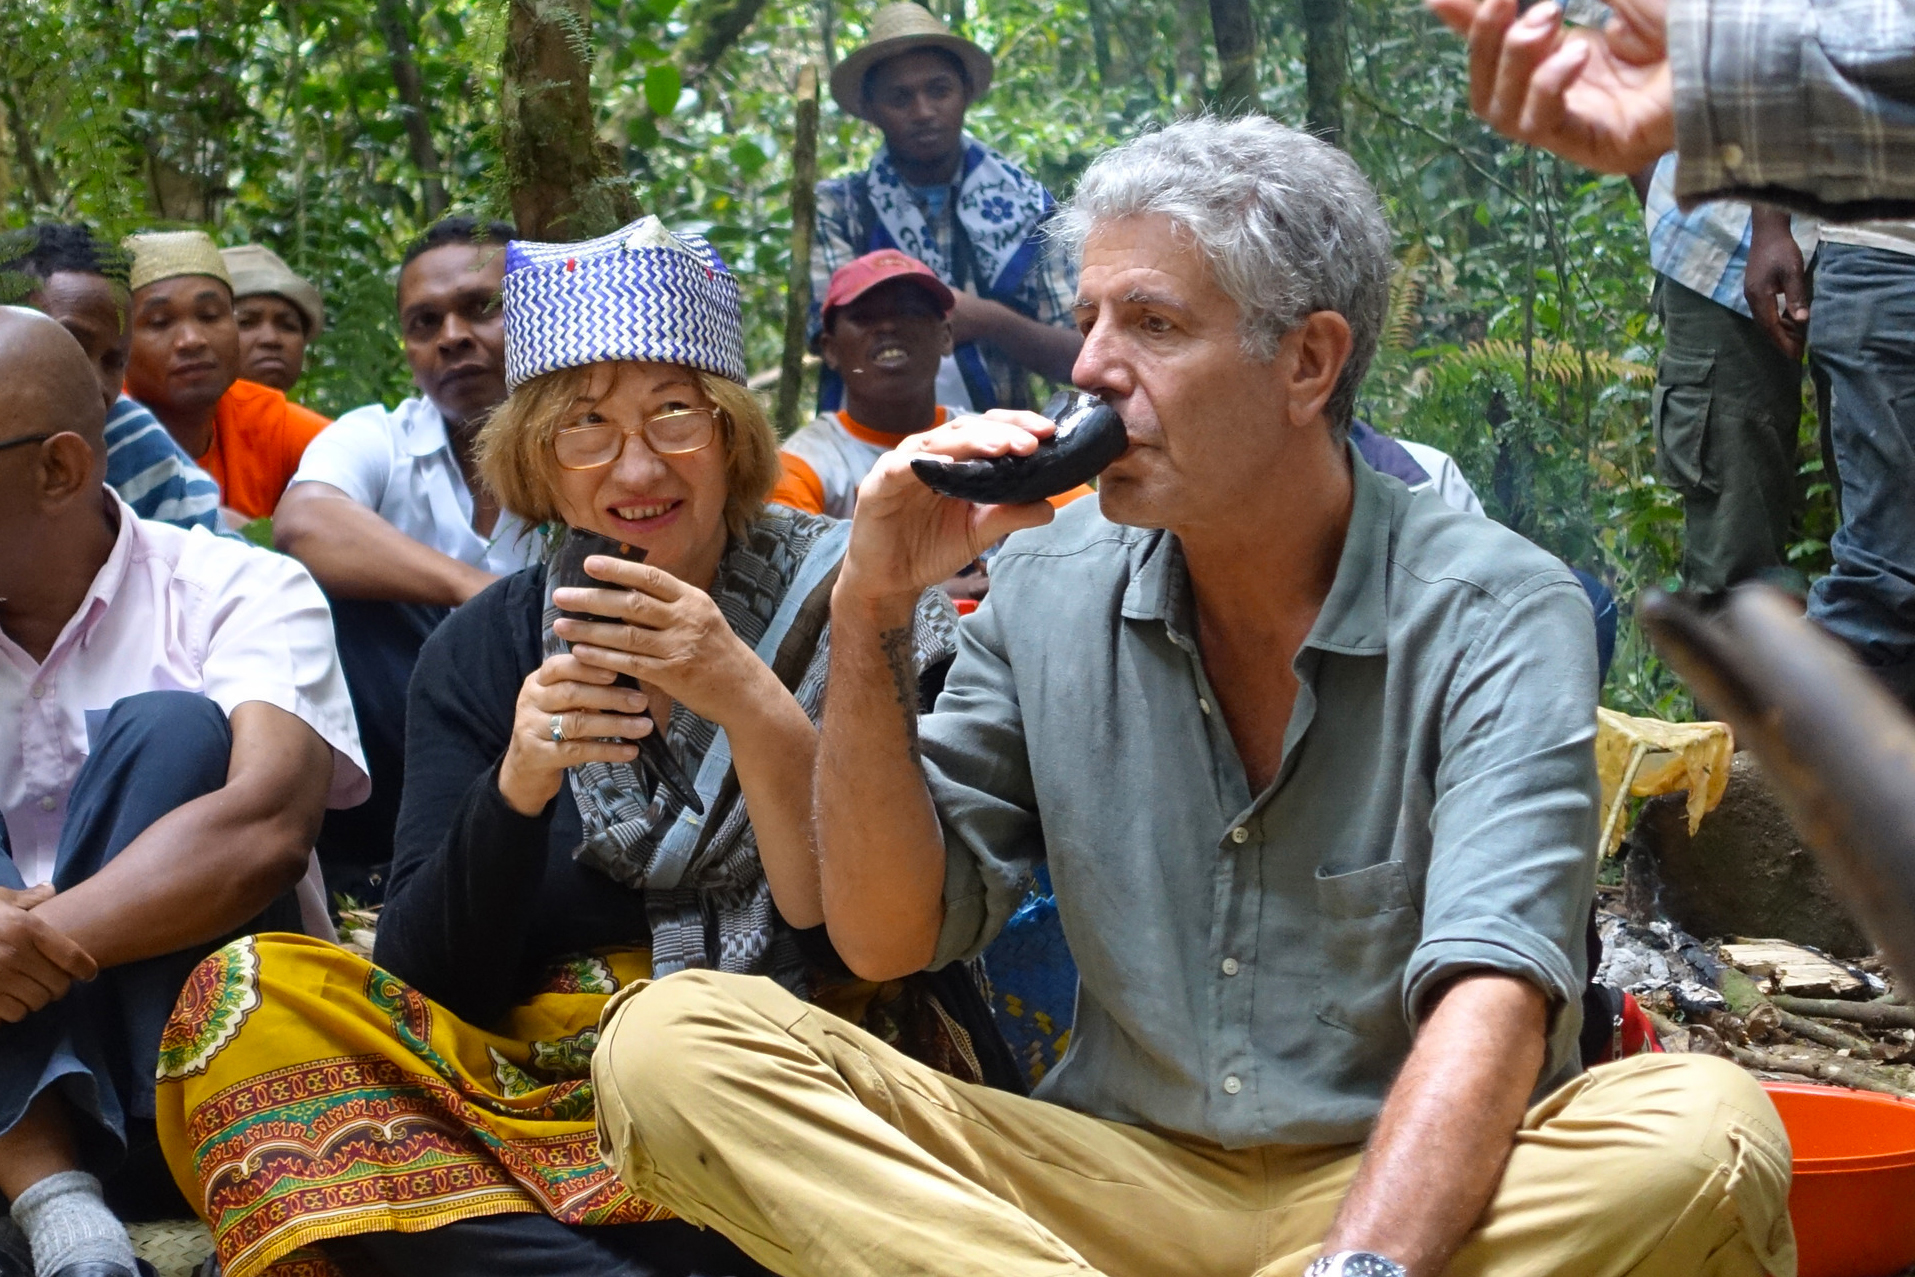 1. Anthony Bourdain with Darren Aronofsky / 2. Bourdain with Dr. Patricia Wright